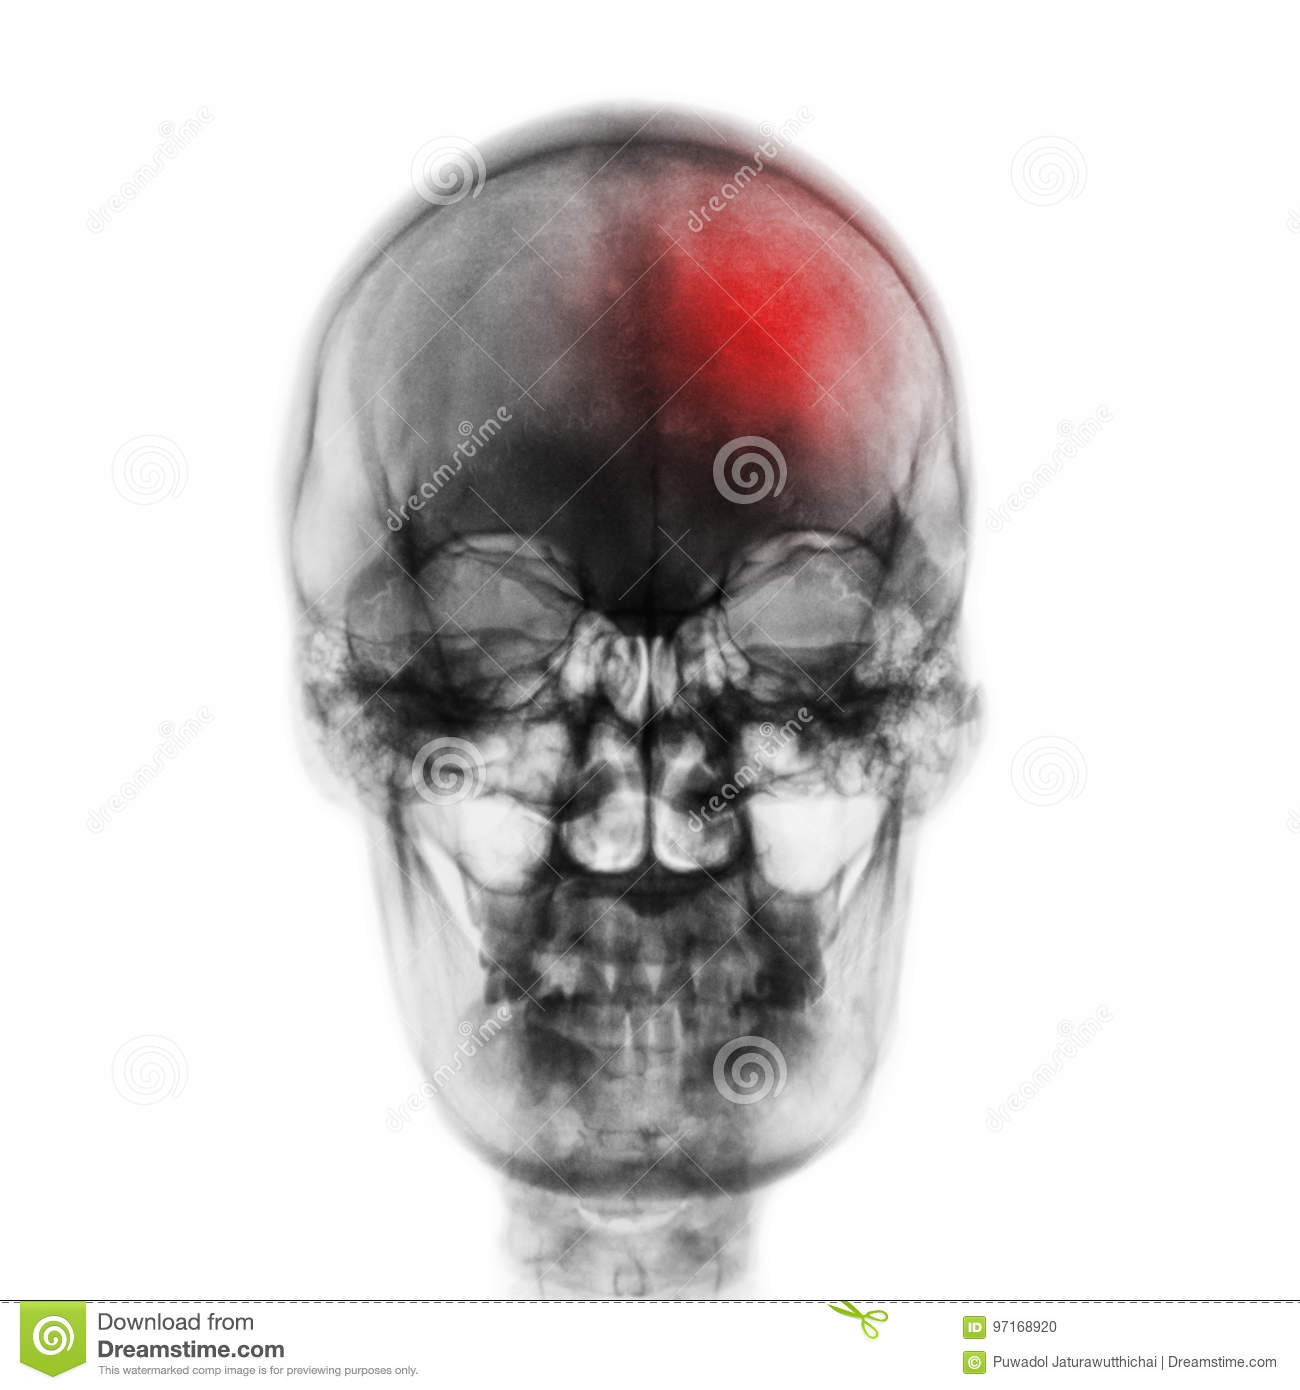 Stroke & x28; Cerebrovascular accident & x29; . Film x-ray skull of human with red area . Front view